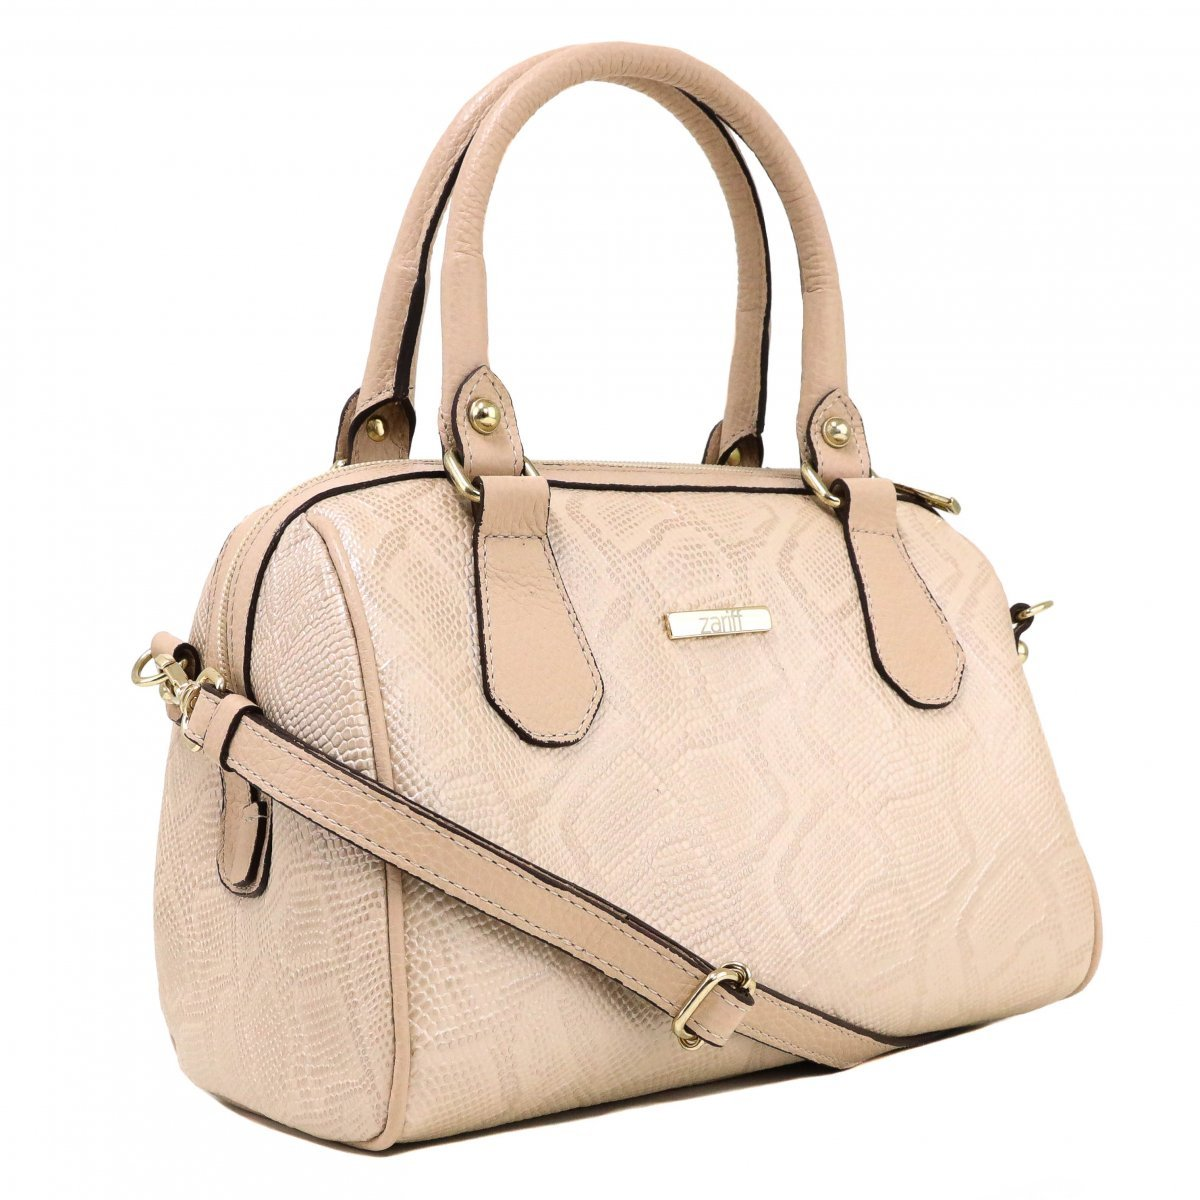 Bolsa Zariff Shoes Satchel Nude